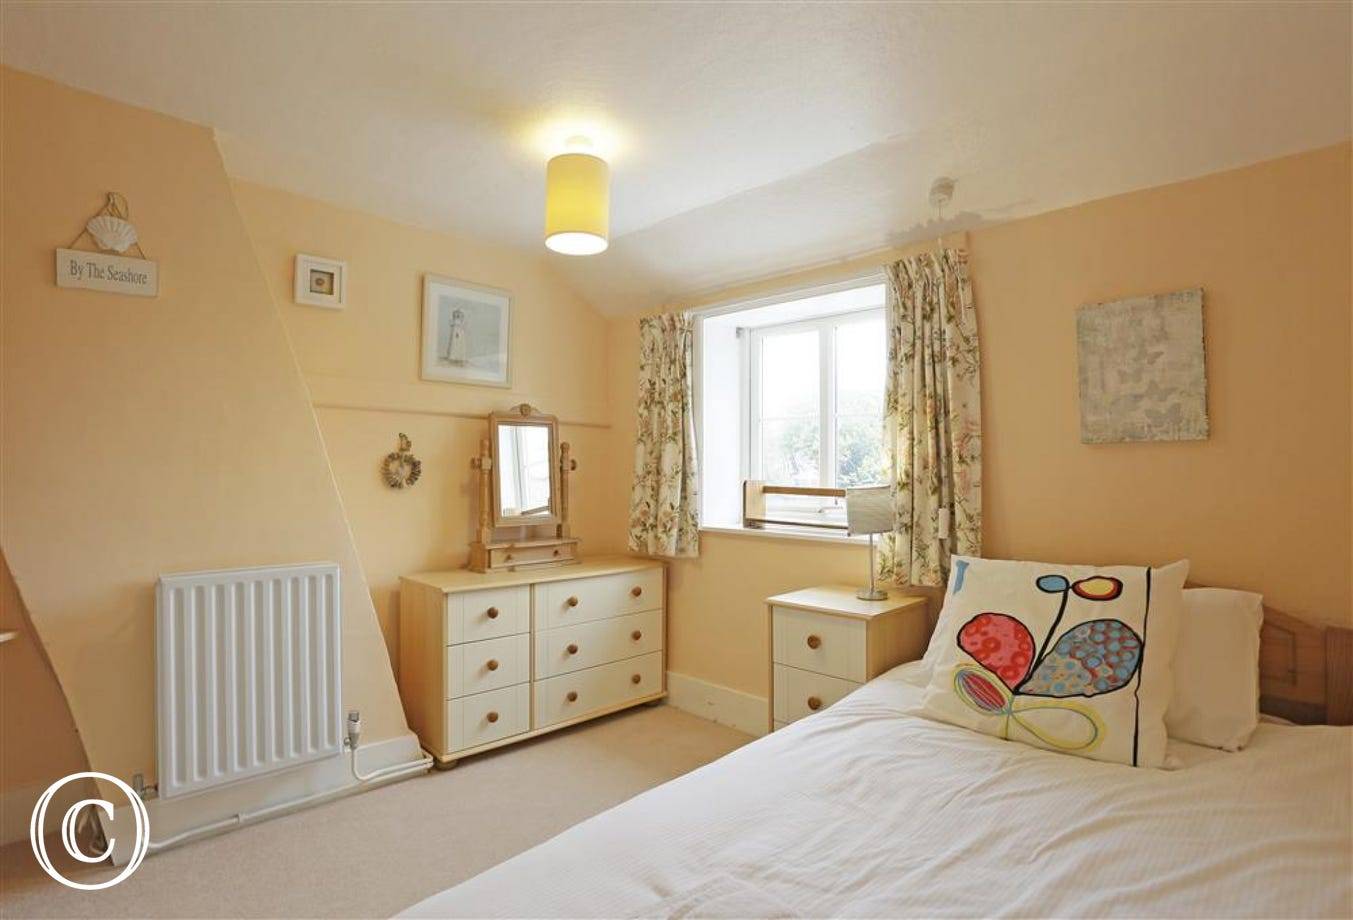 This single bedded room at the rear of the property is cosy and welcoming.